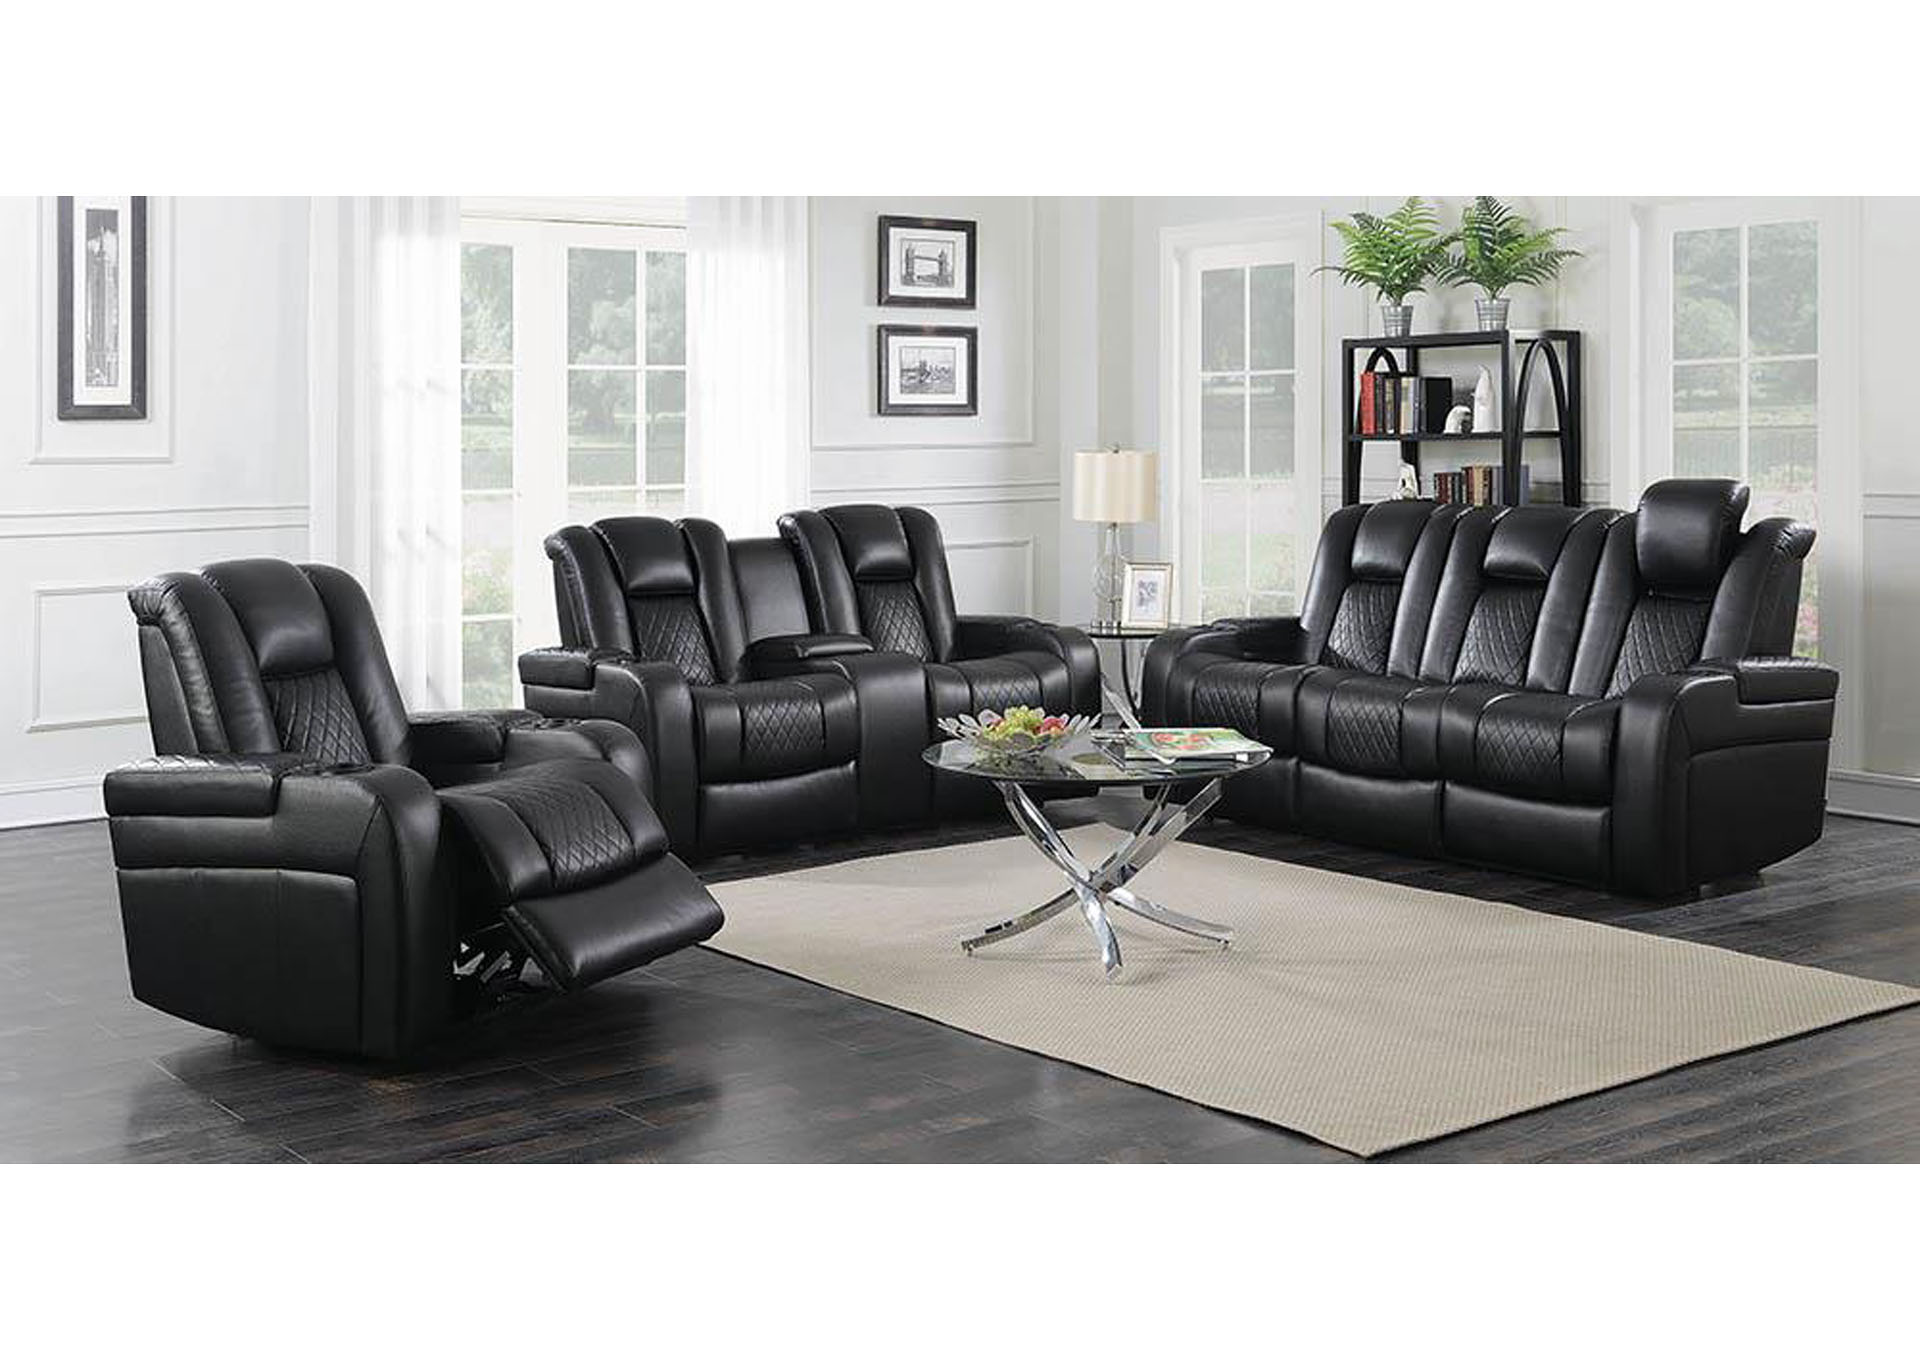 Delangelo Black Power Reclining Sofa,Coaster Furniture